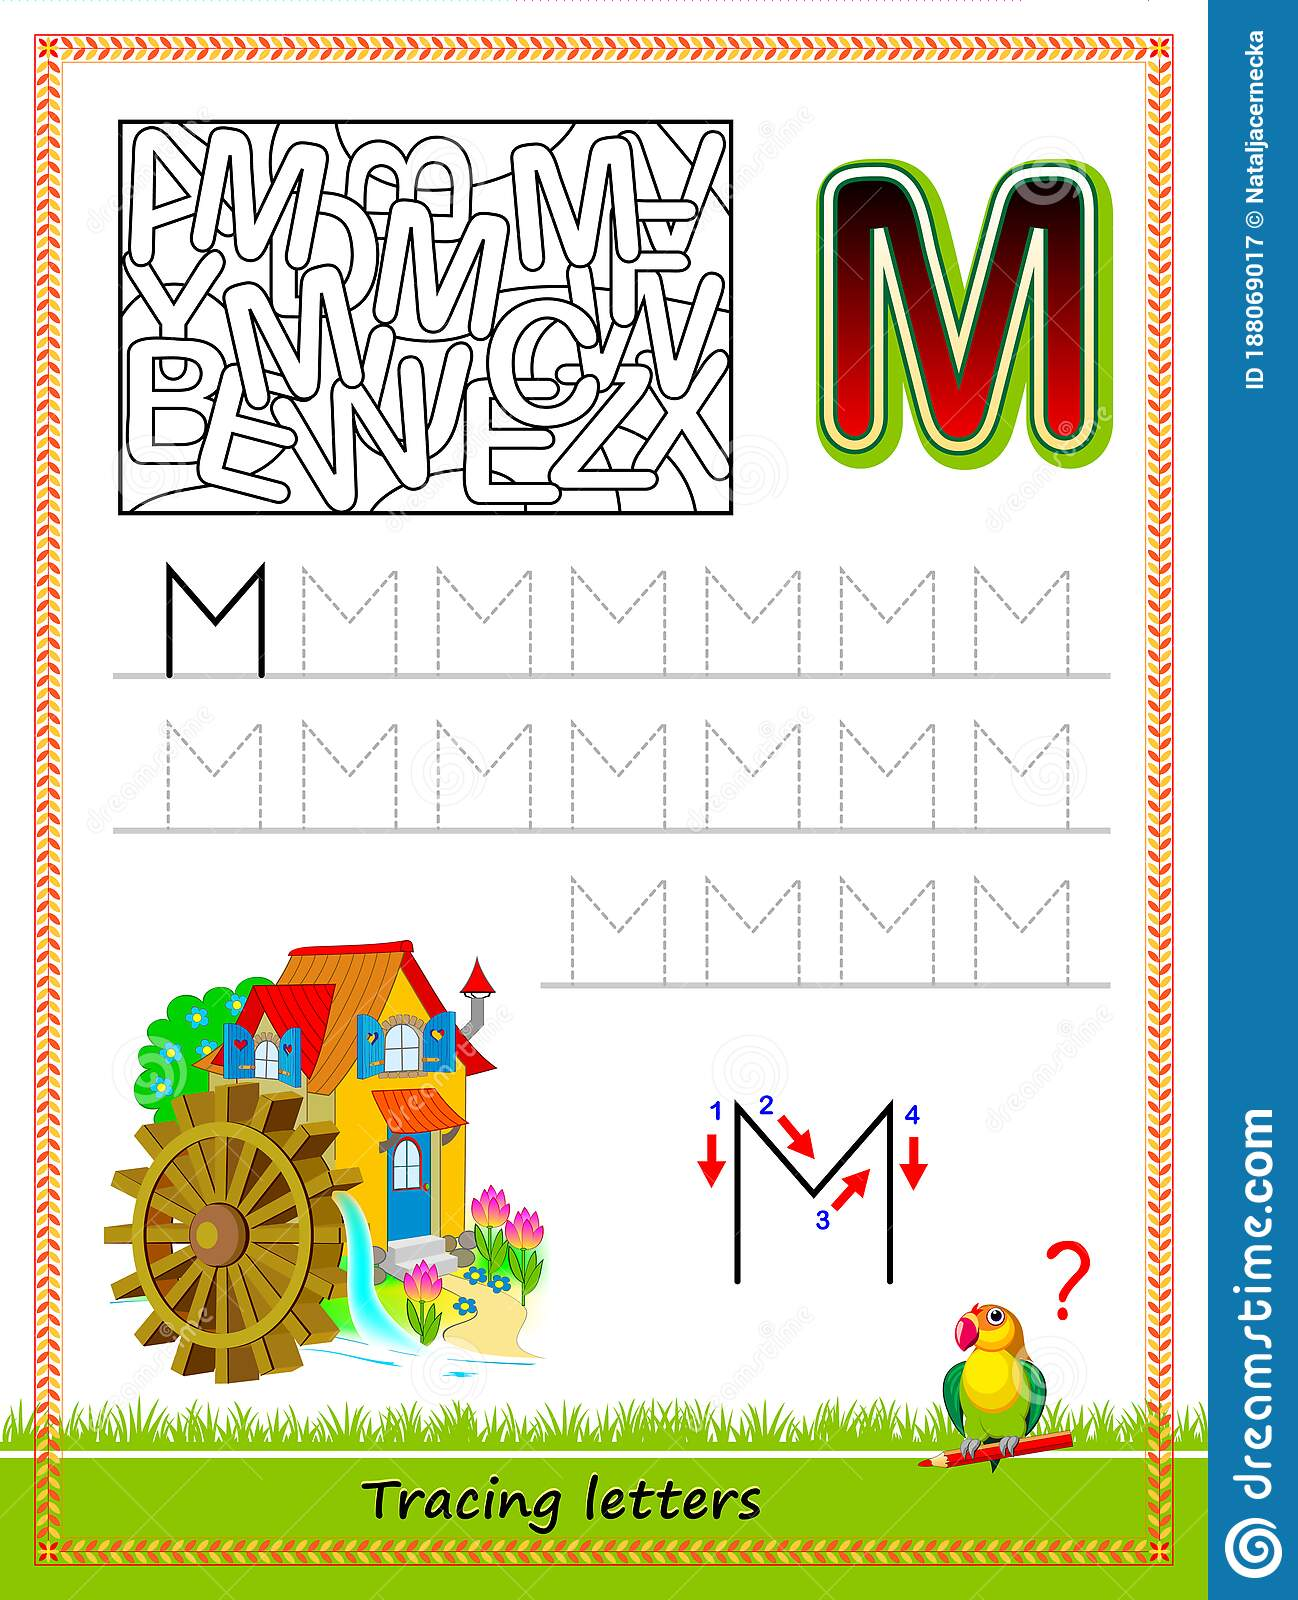 Worksheet For Tracing Letters Find And Paint All Letters